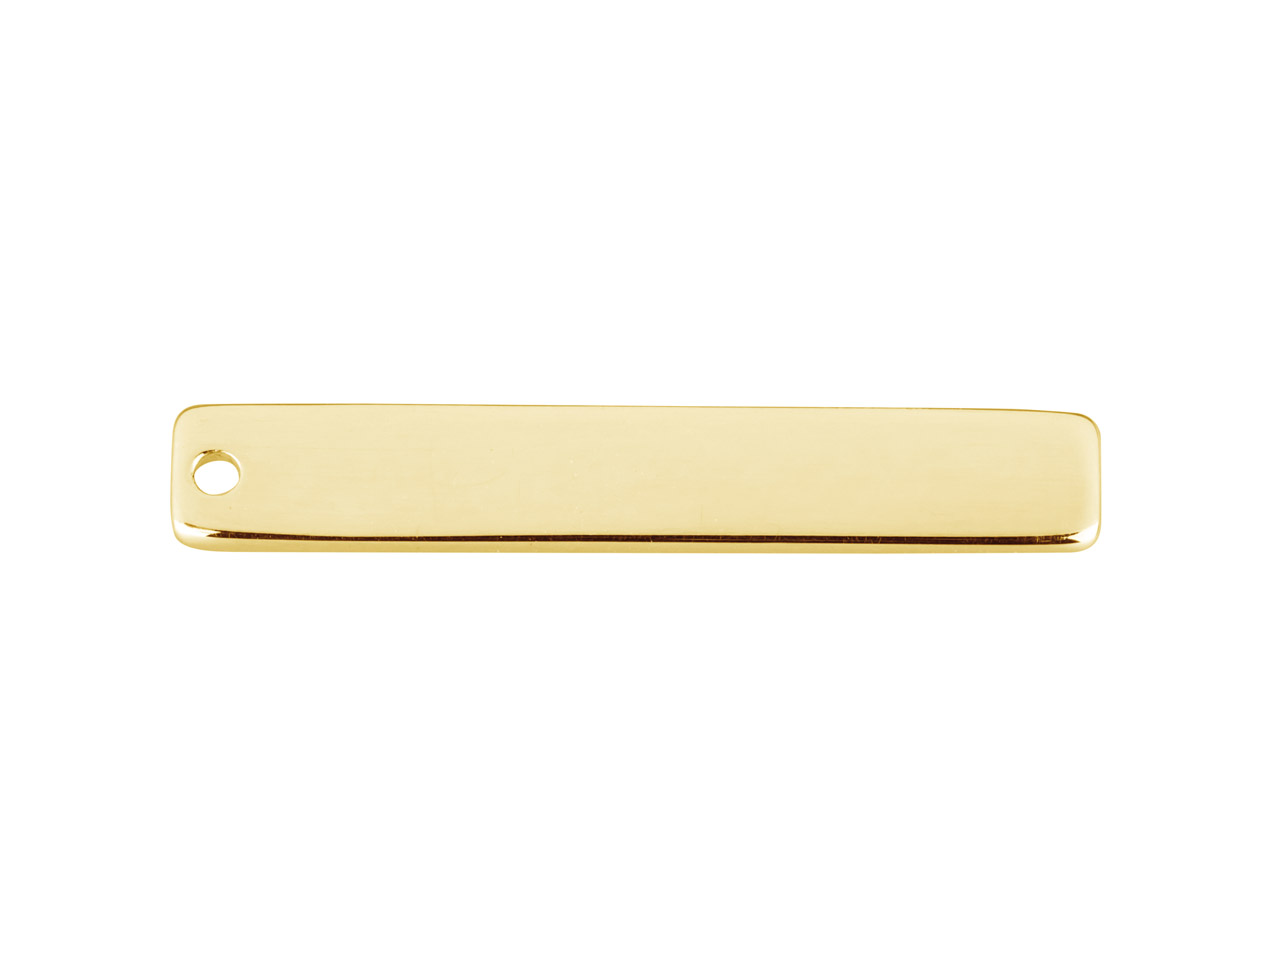 Barre rectangle 1 trou, 30 x 5 x 0,80 mm, Gold filled 14k